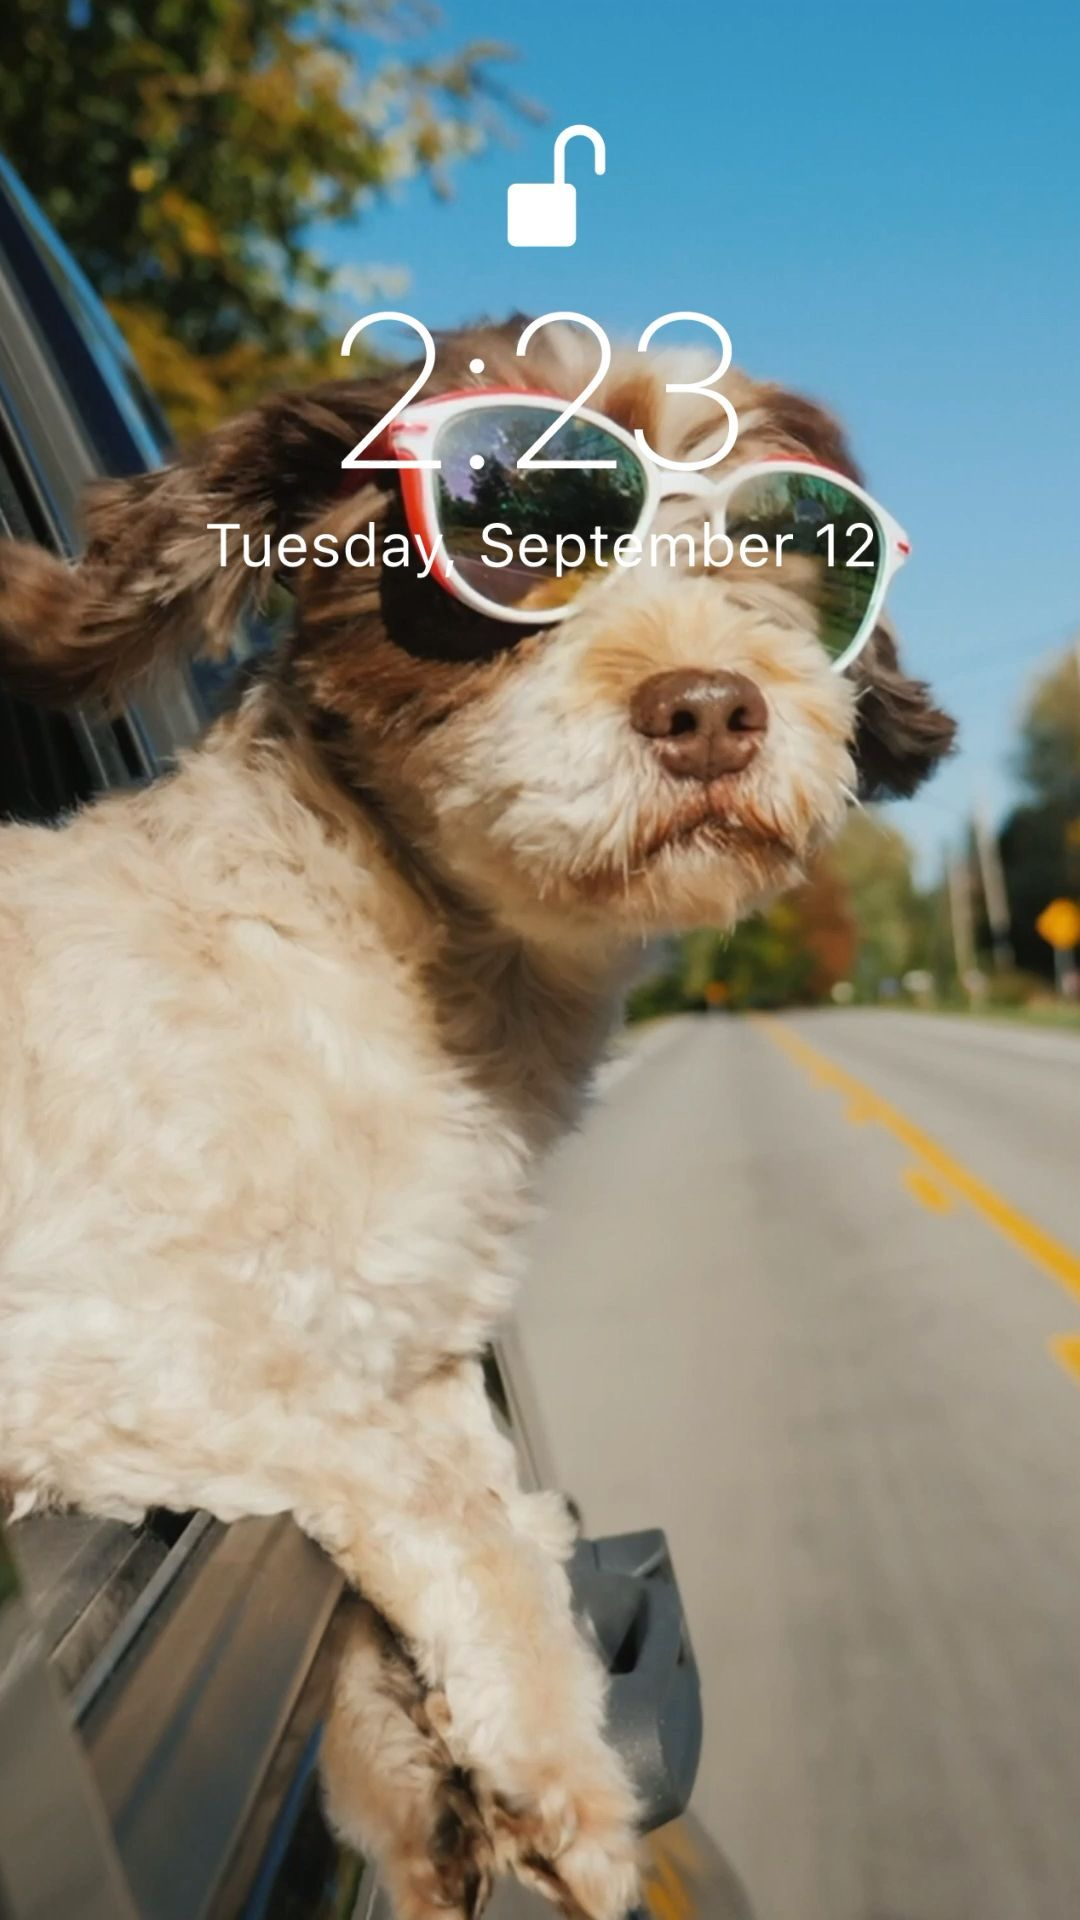 Iphone Wallpaper Videos Hintergrundbildiphone Tapete Funny Wallpaper For Your Iphone Xs Fro Live Wallpaper Iphone Funny Iphone Wallpaper Dog Wallpaper Iphone